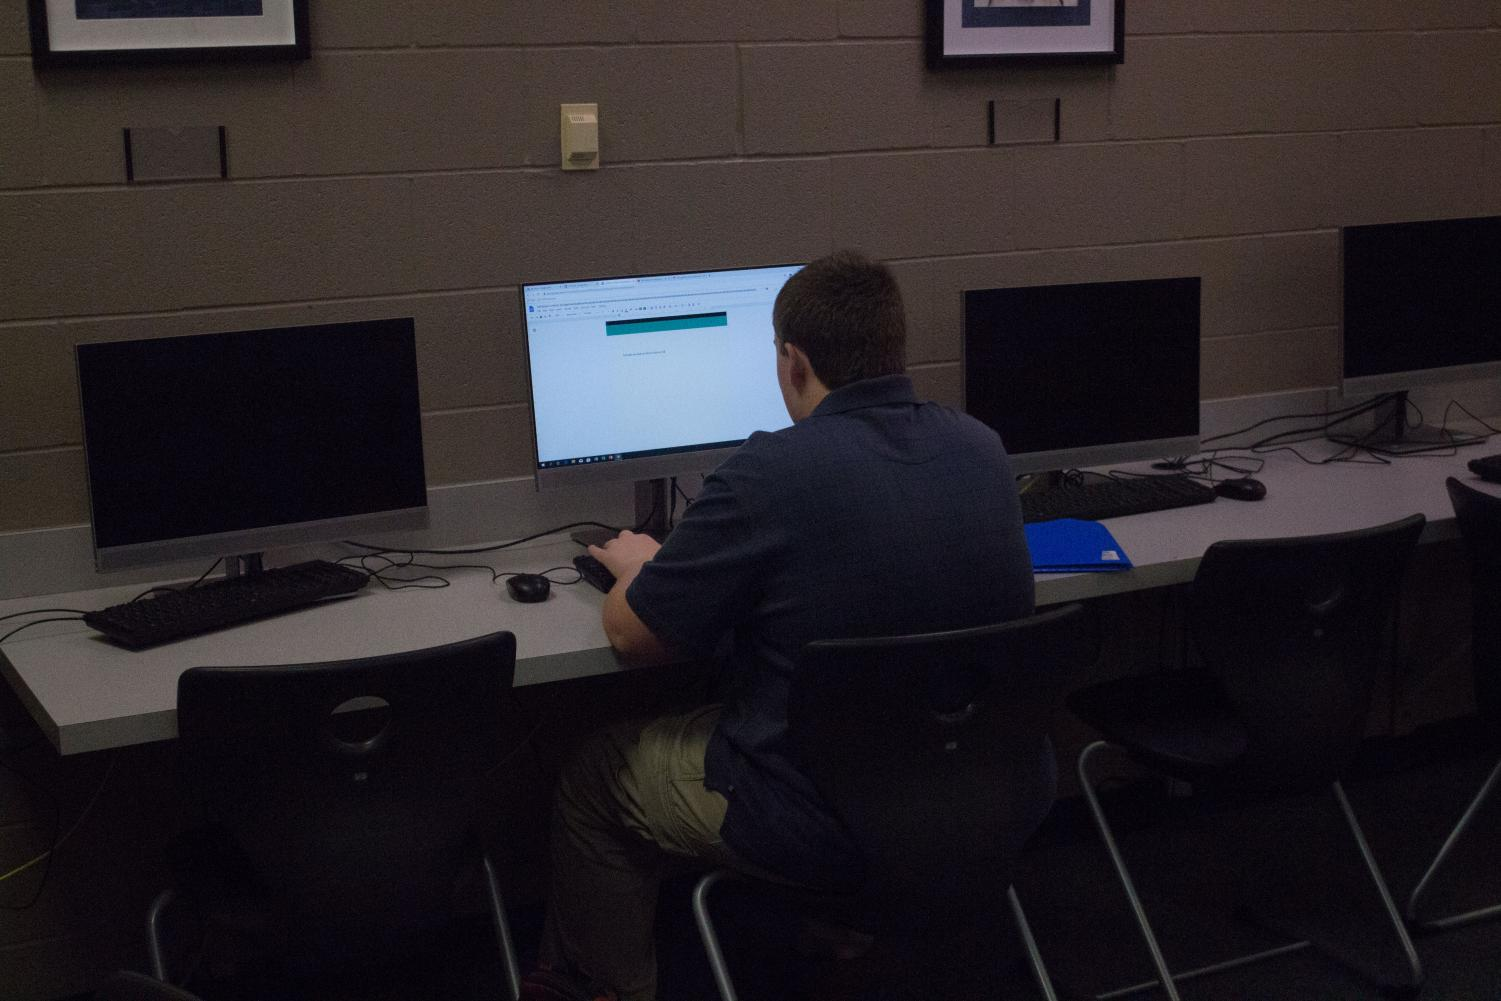 A student uses a library computer to complete an assignment. Library computers are a vital resource to students.